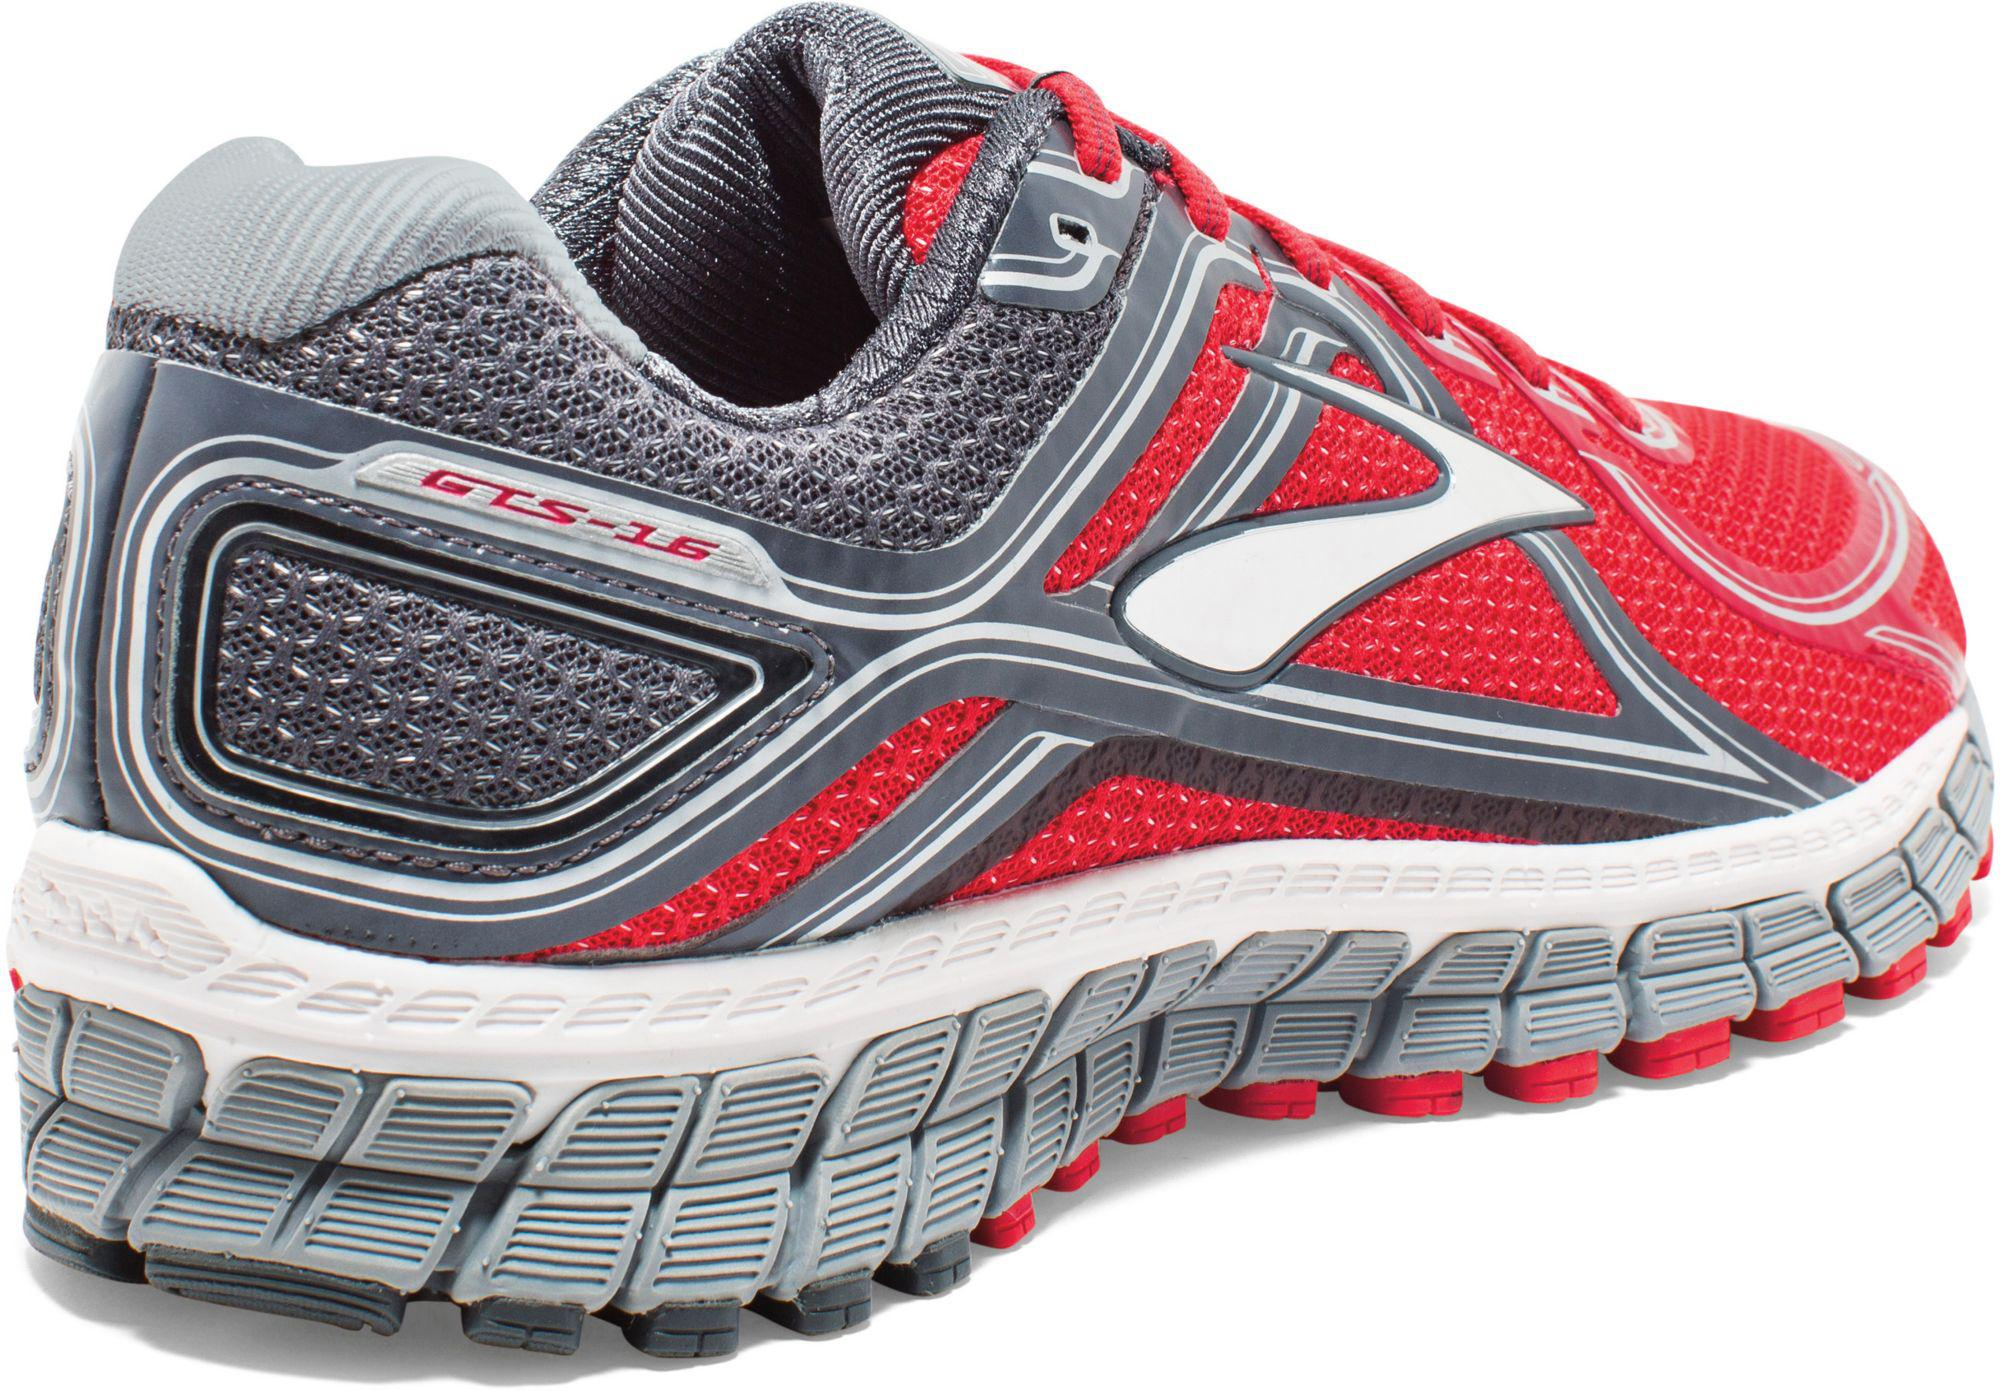 85e6221bf85 Lyst - Brooks Adrenaline Gts 16 Running Shoes in Red for Men